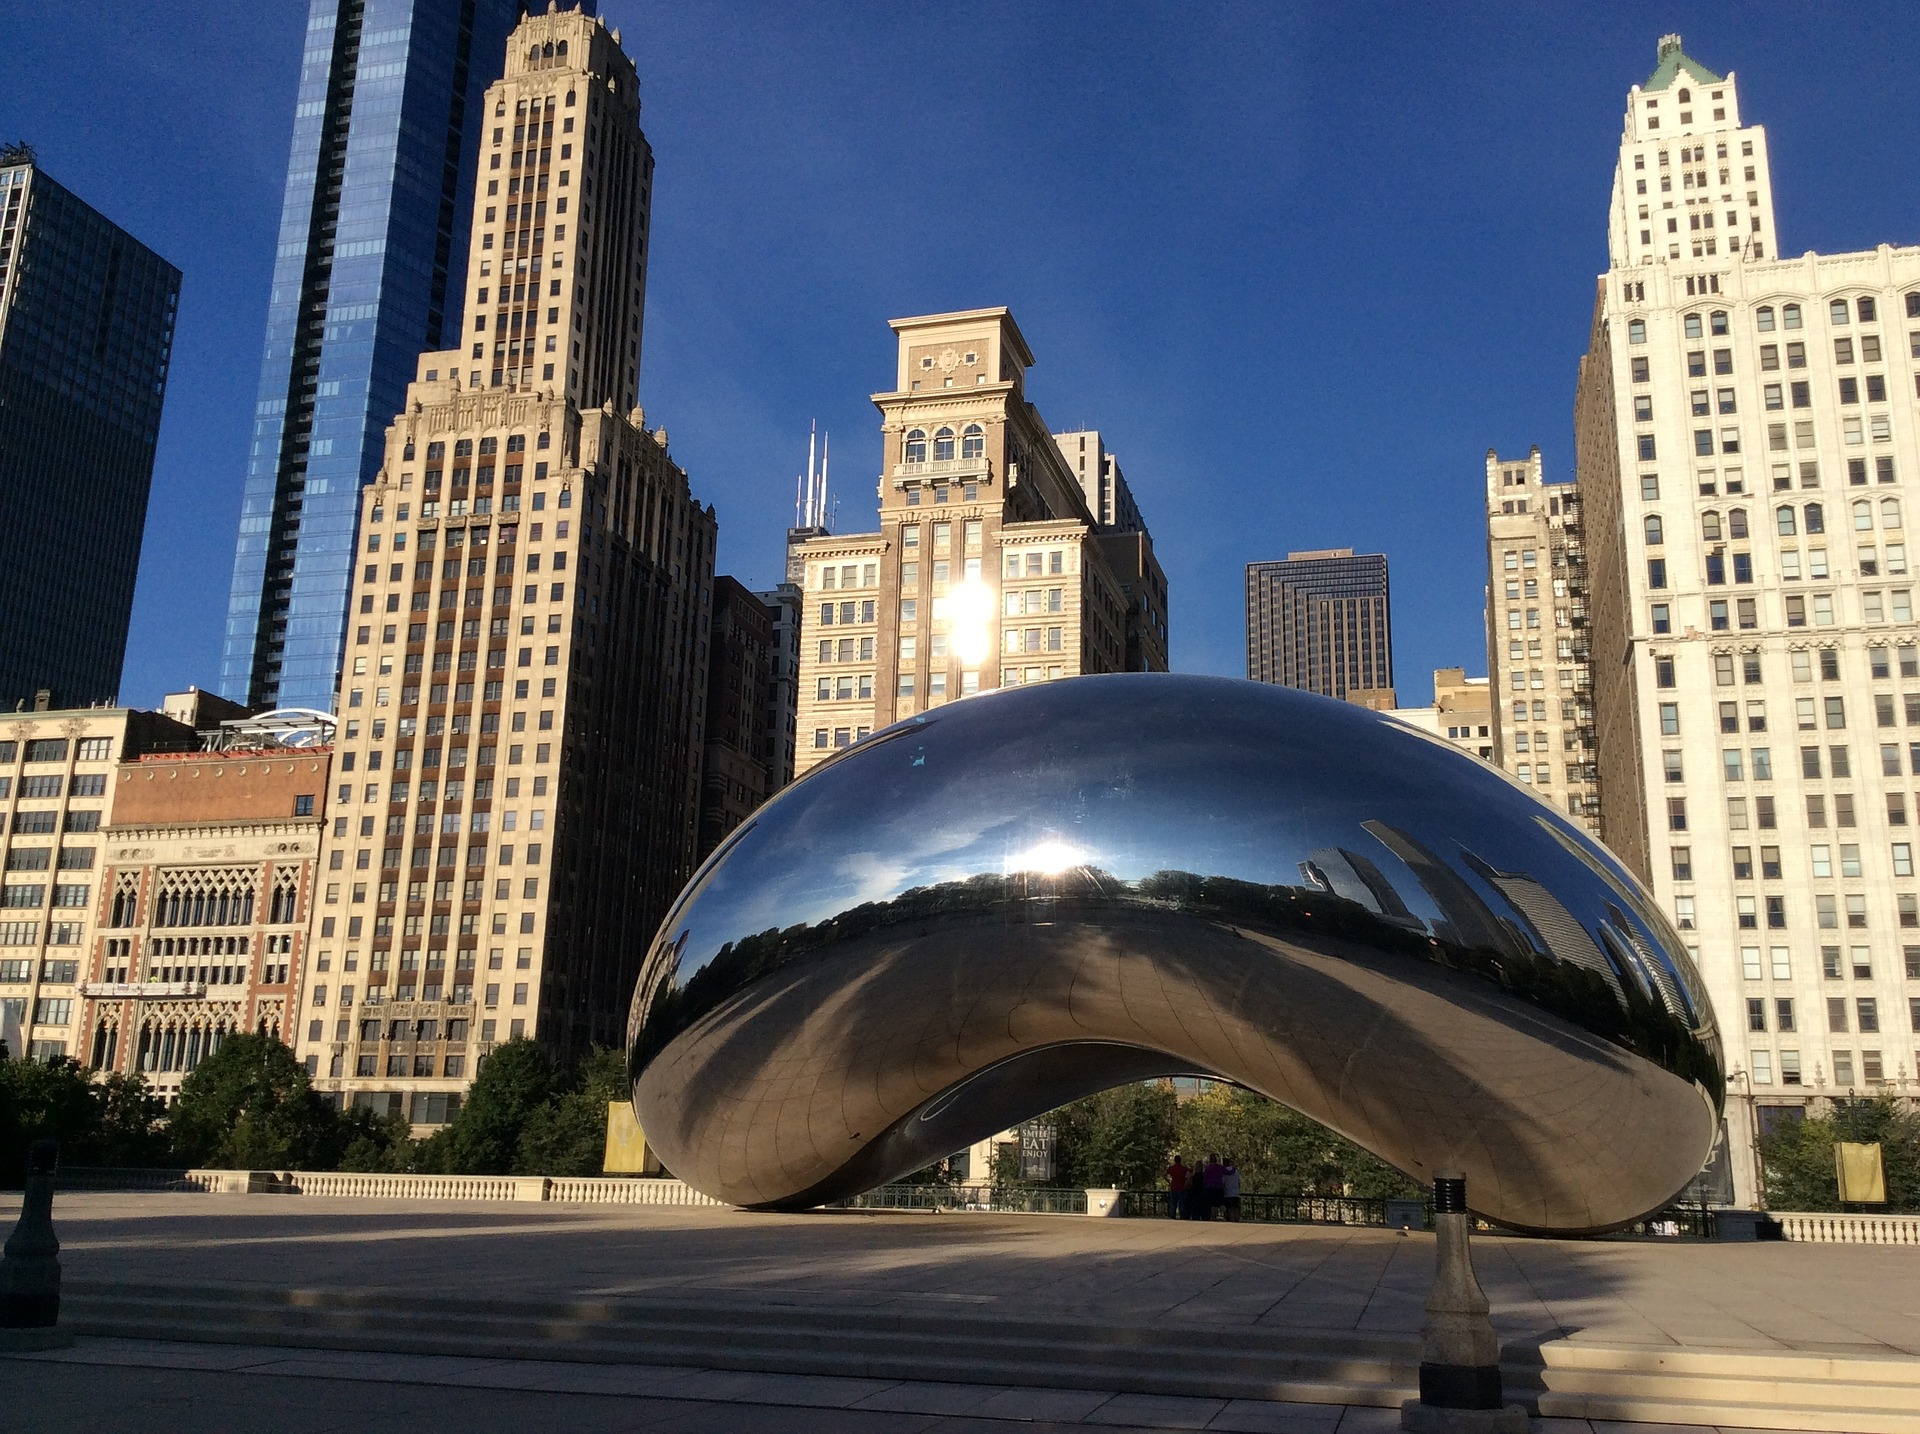 Millennium Park, Chicago, with the Cloud Gate